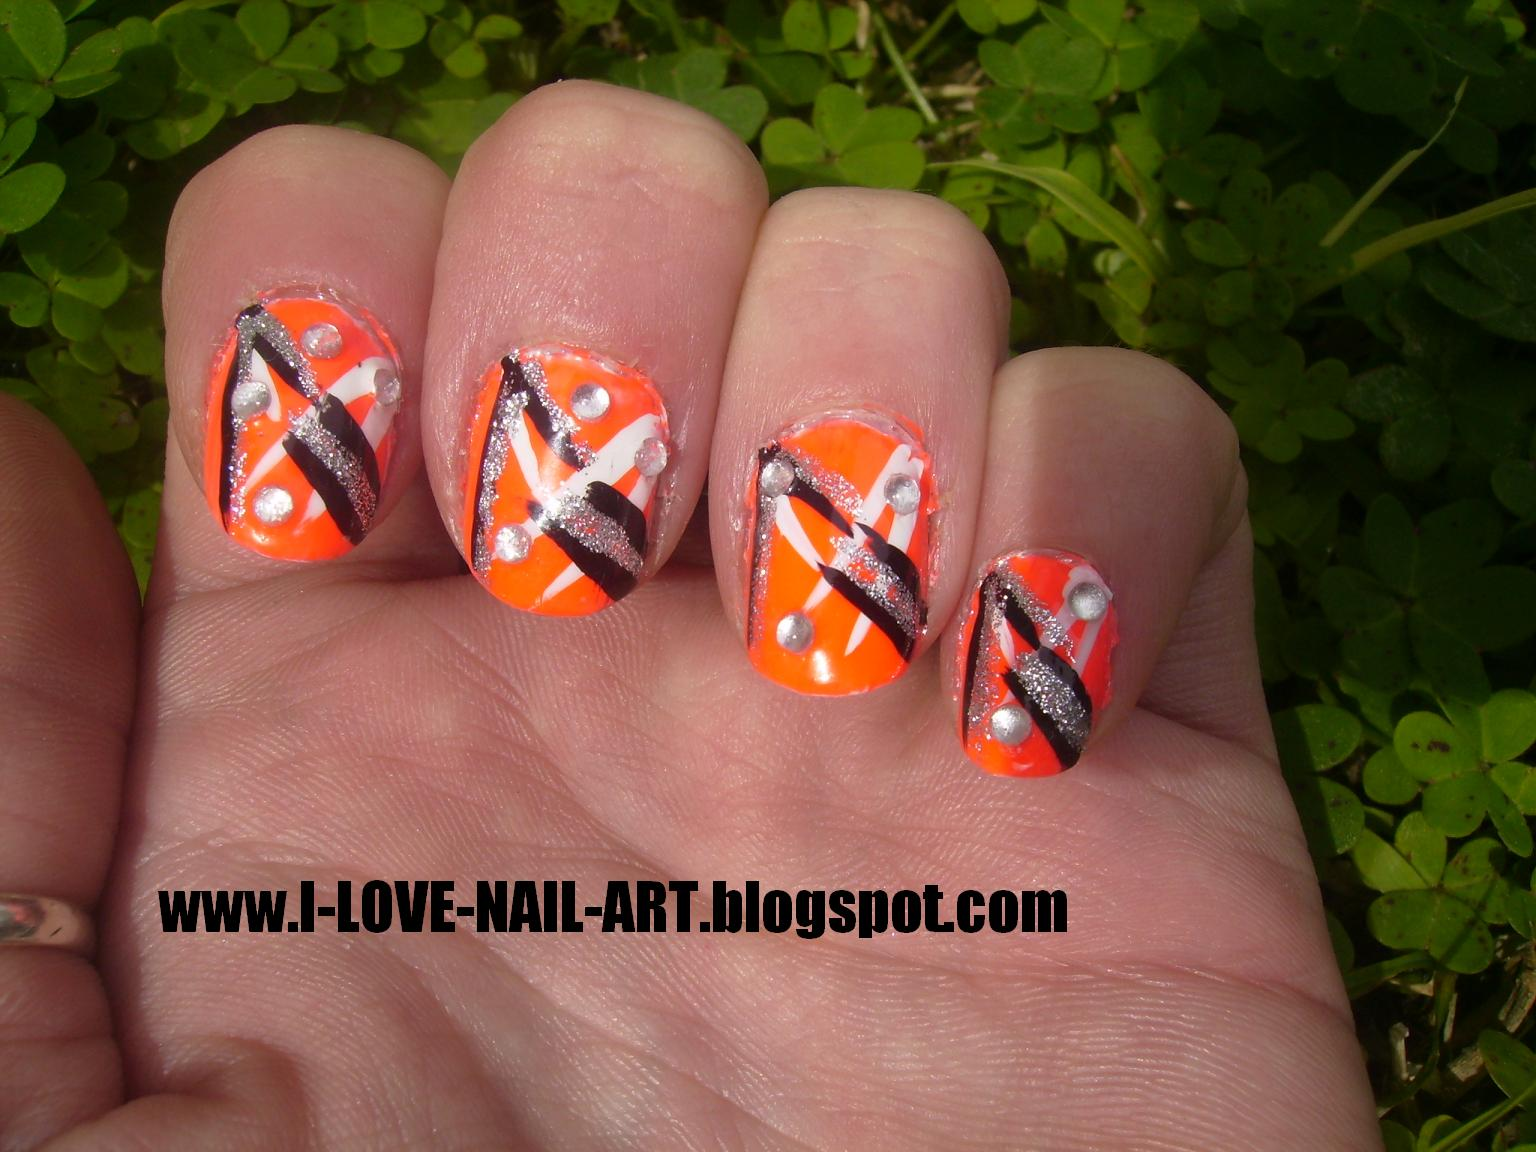 Orange and Black Nail Designs http://i-love-nail-art.blogspot.com/2010/09/neon-orange-abstract.html